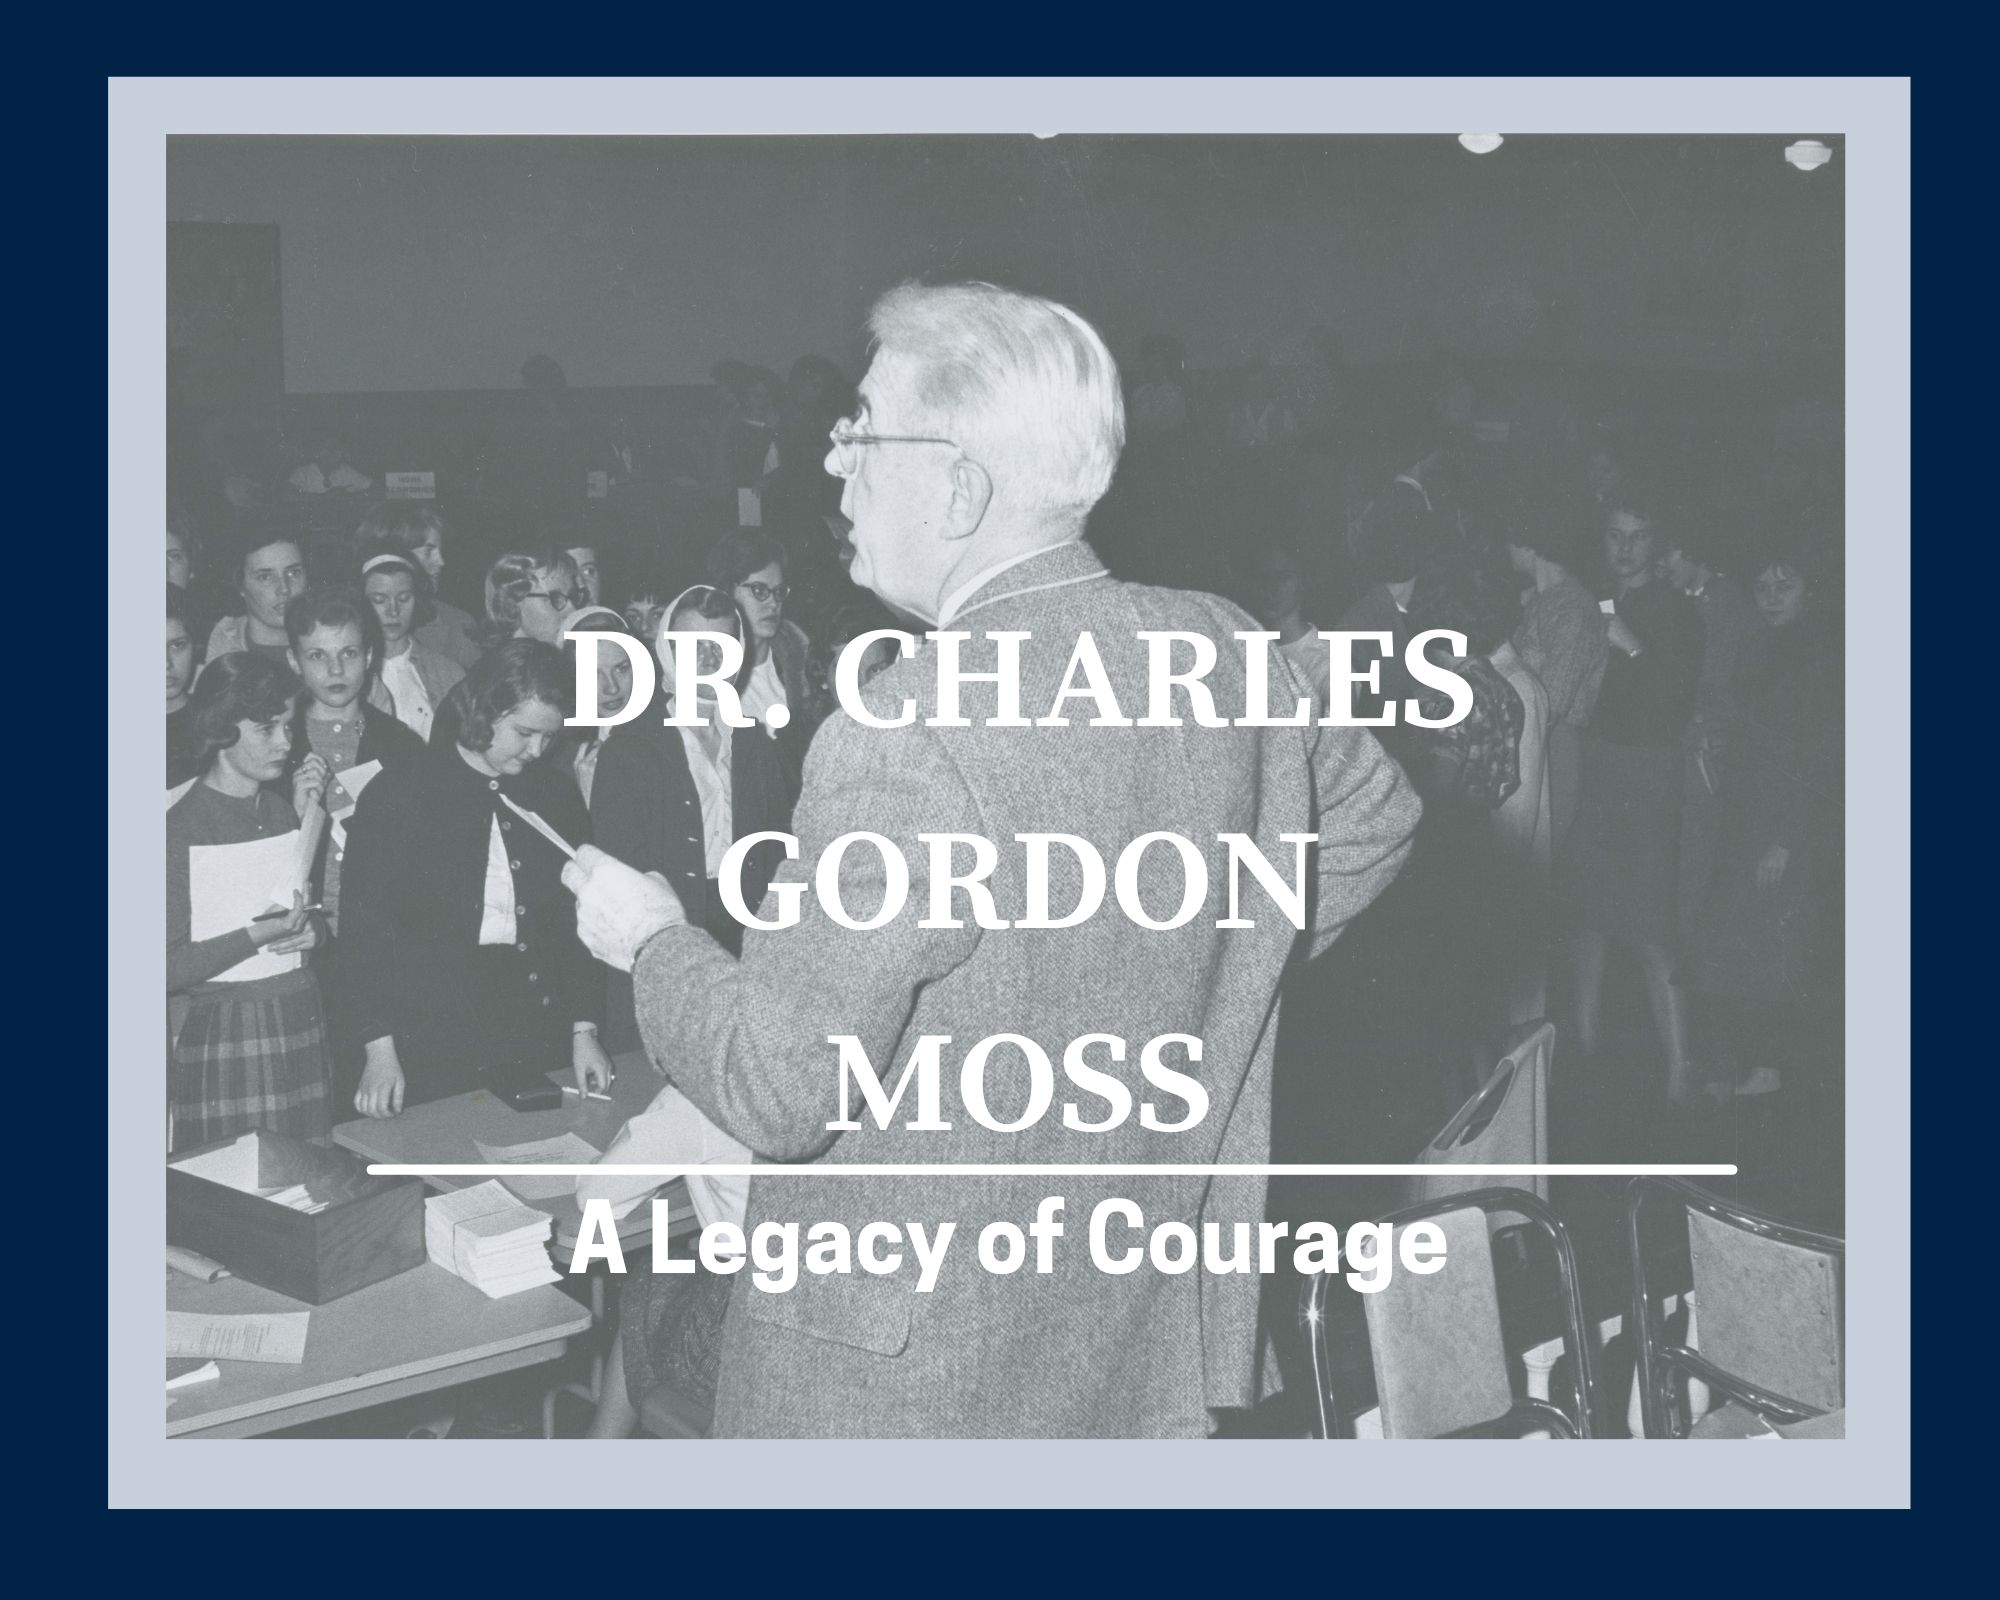 Charles Gordon Moss lecturing